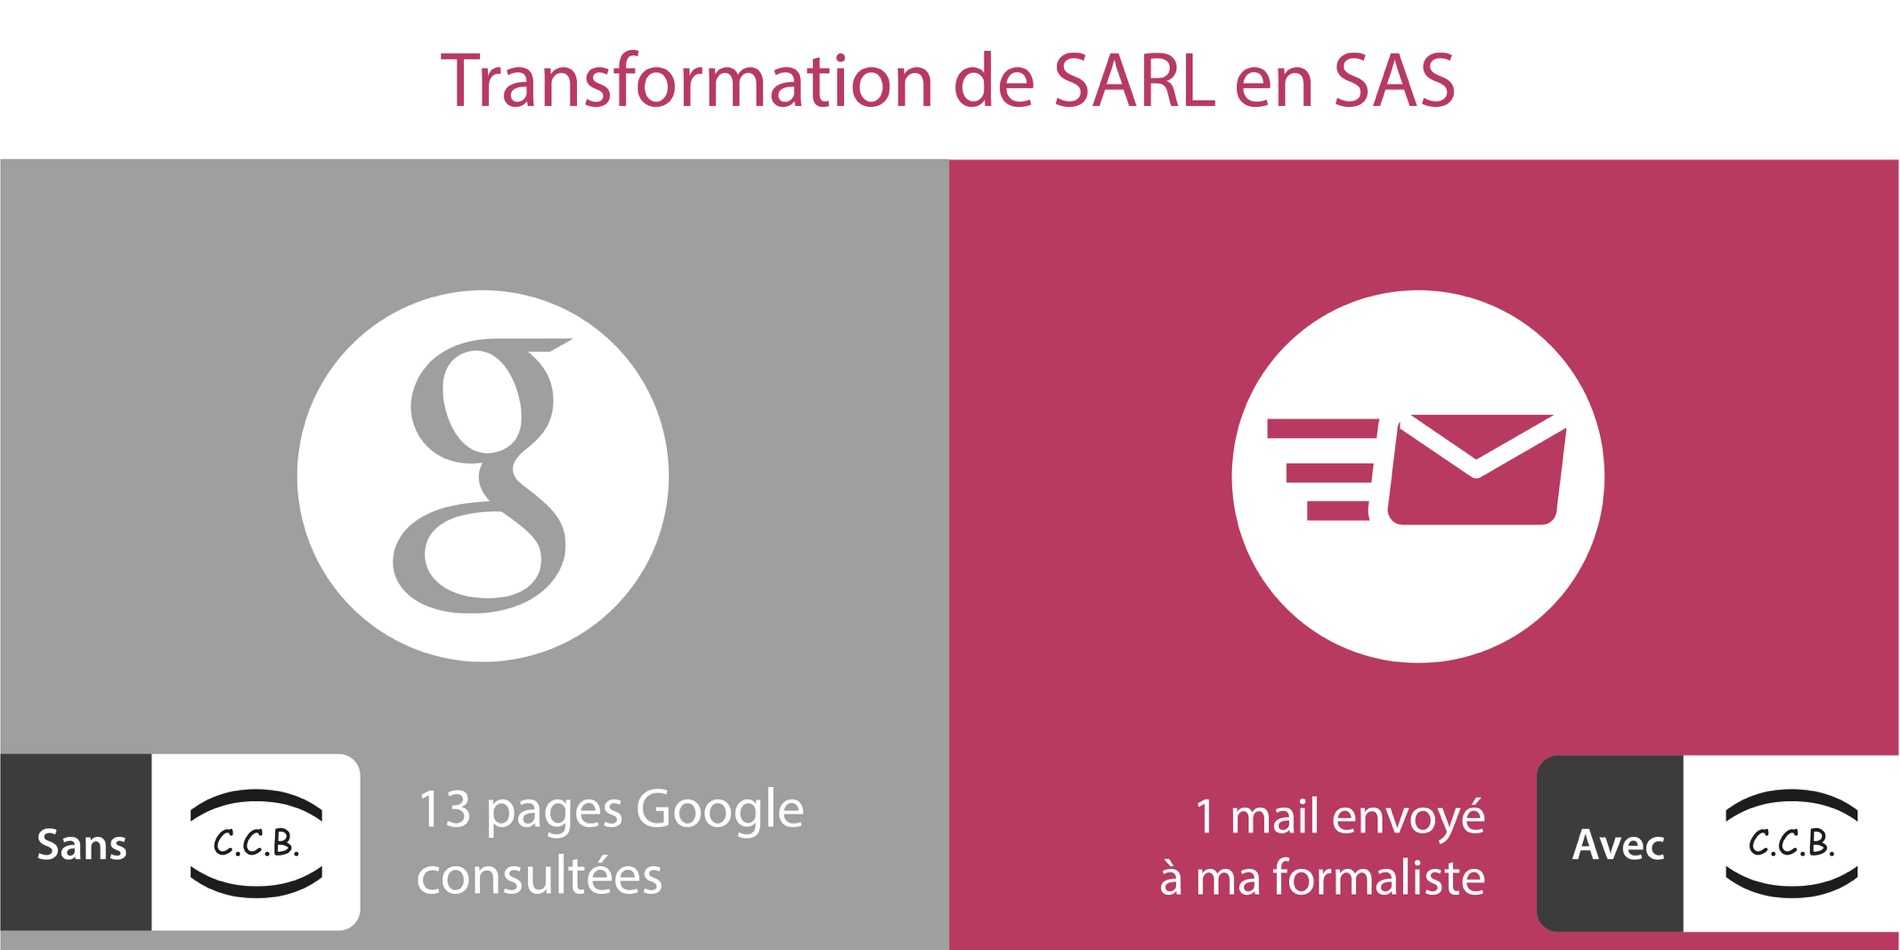 Transformation de SARL en SAS